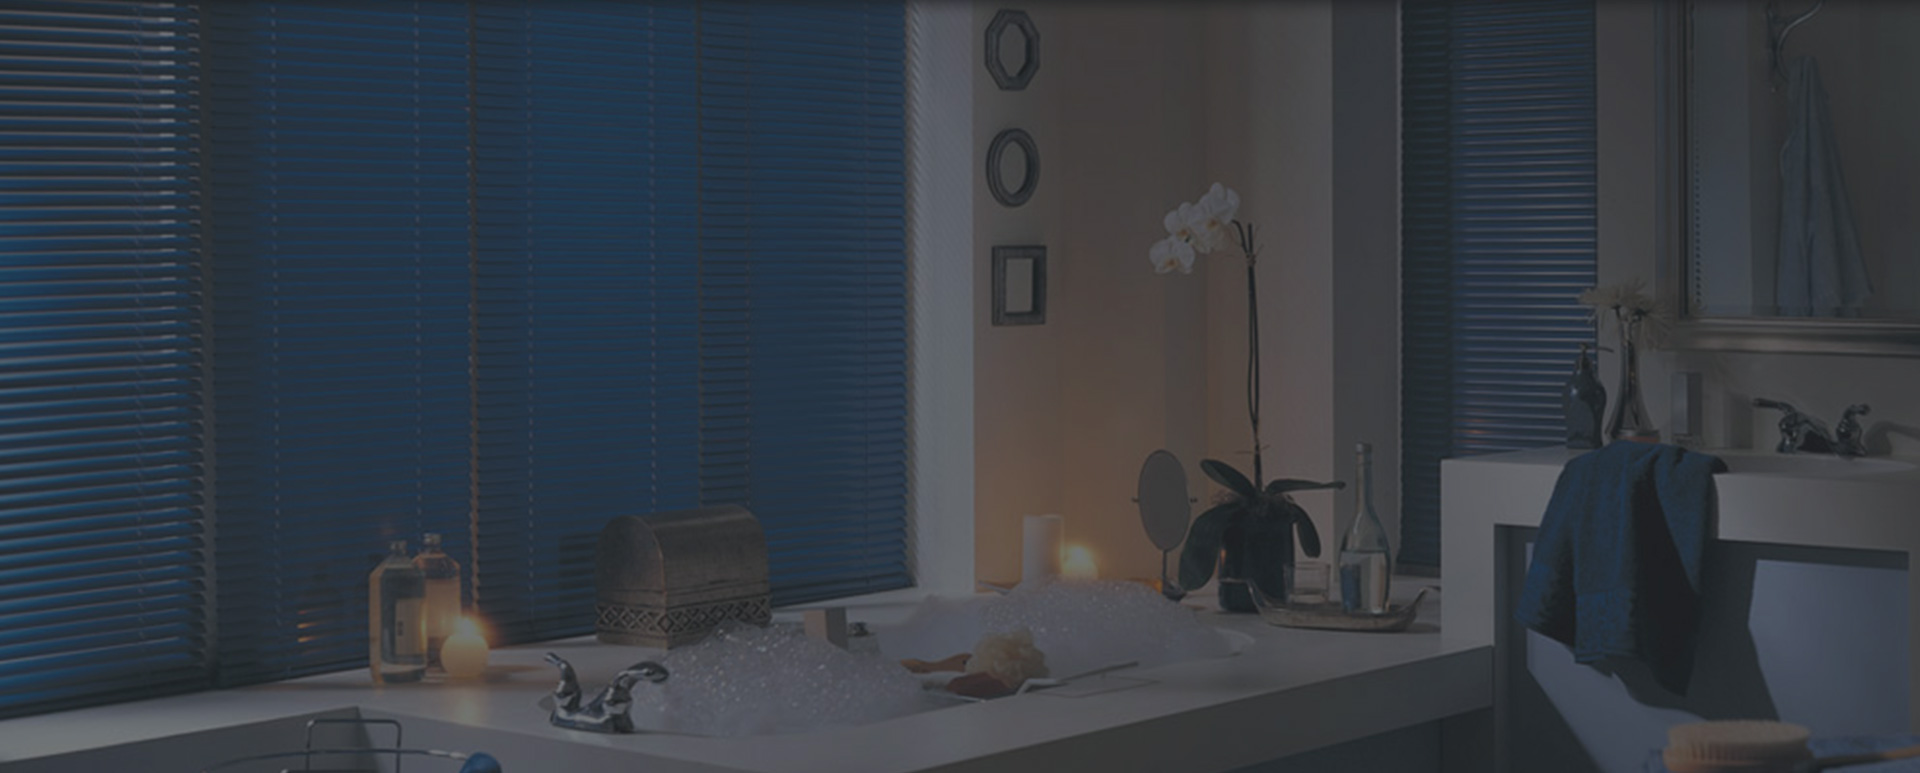 blue blinds in bathroom